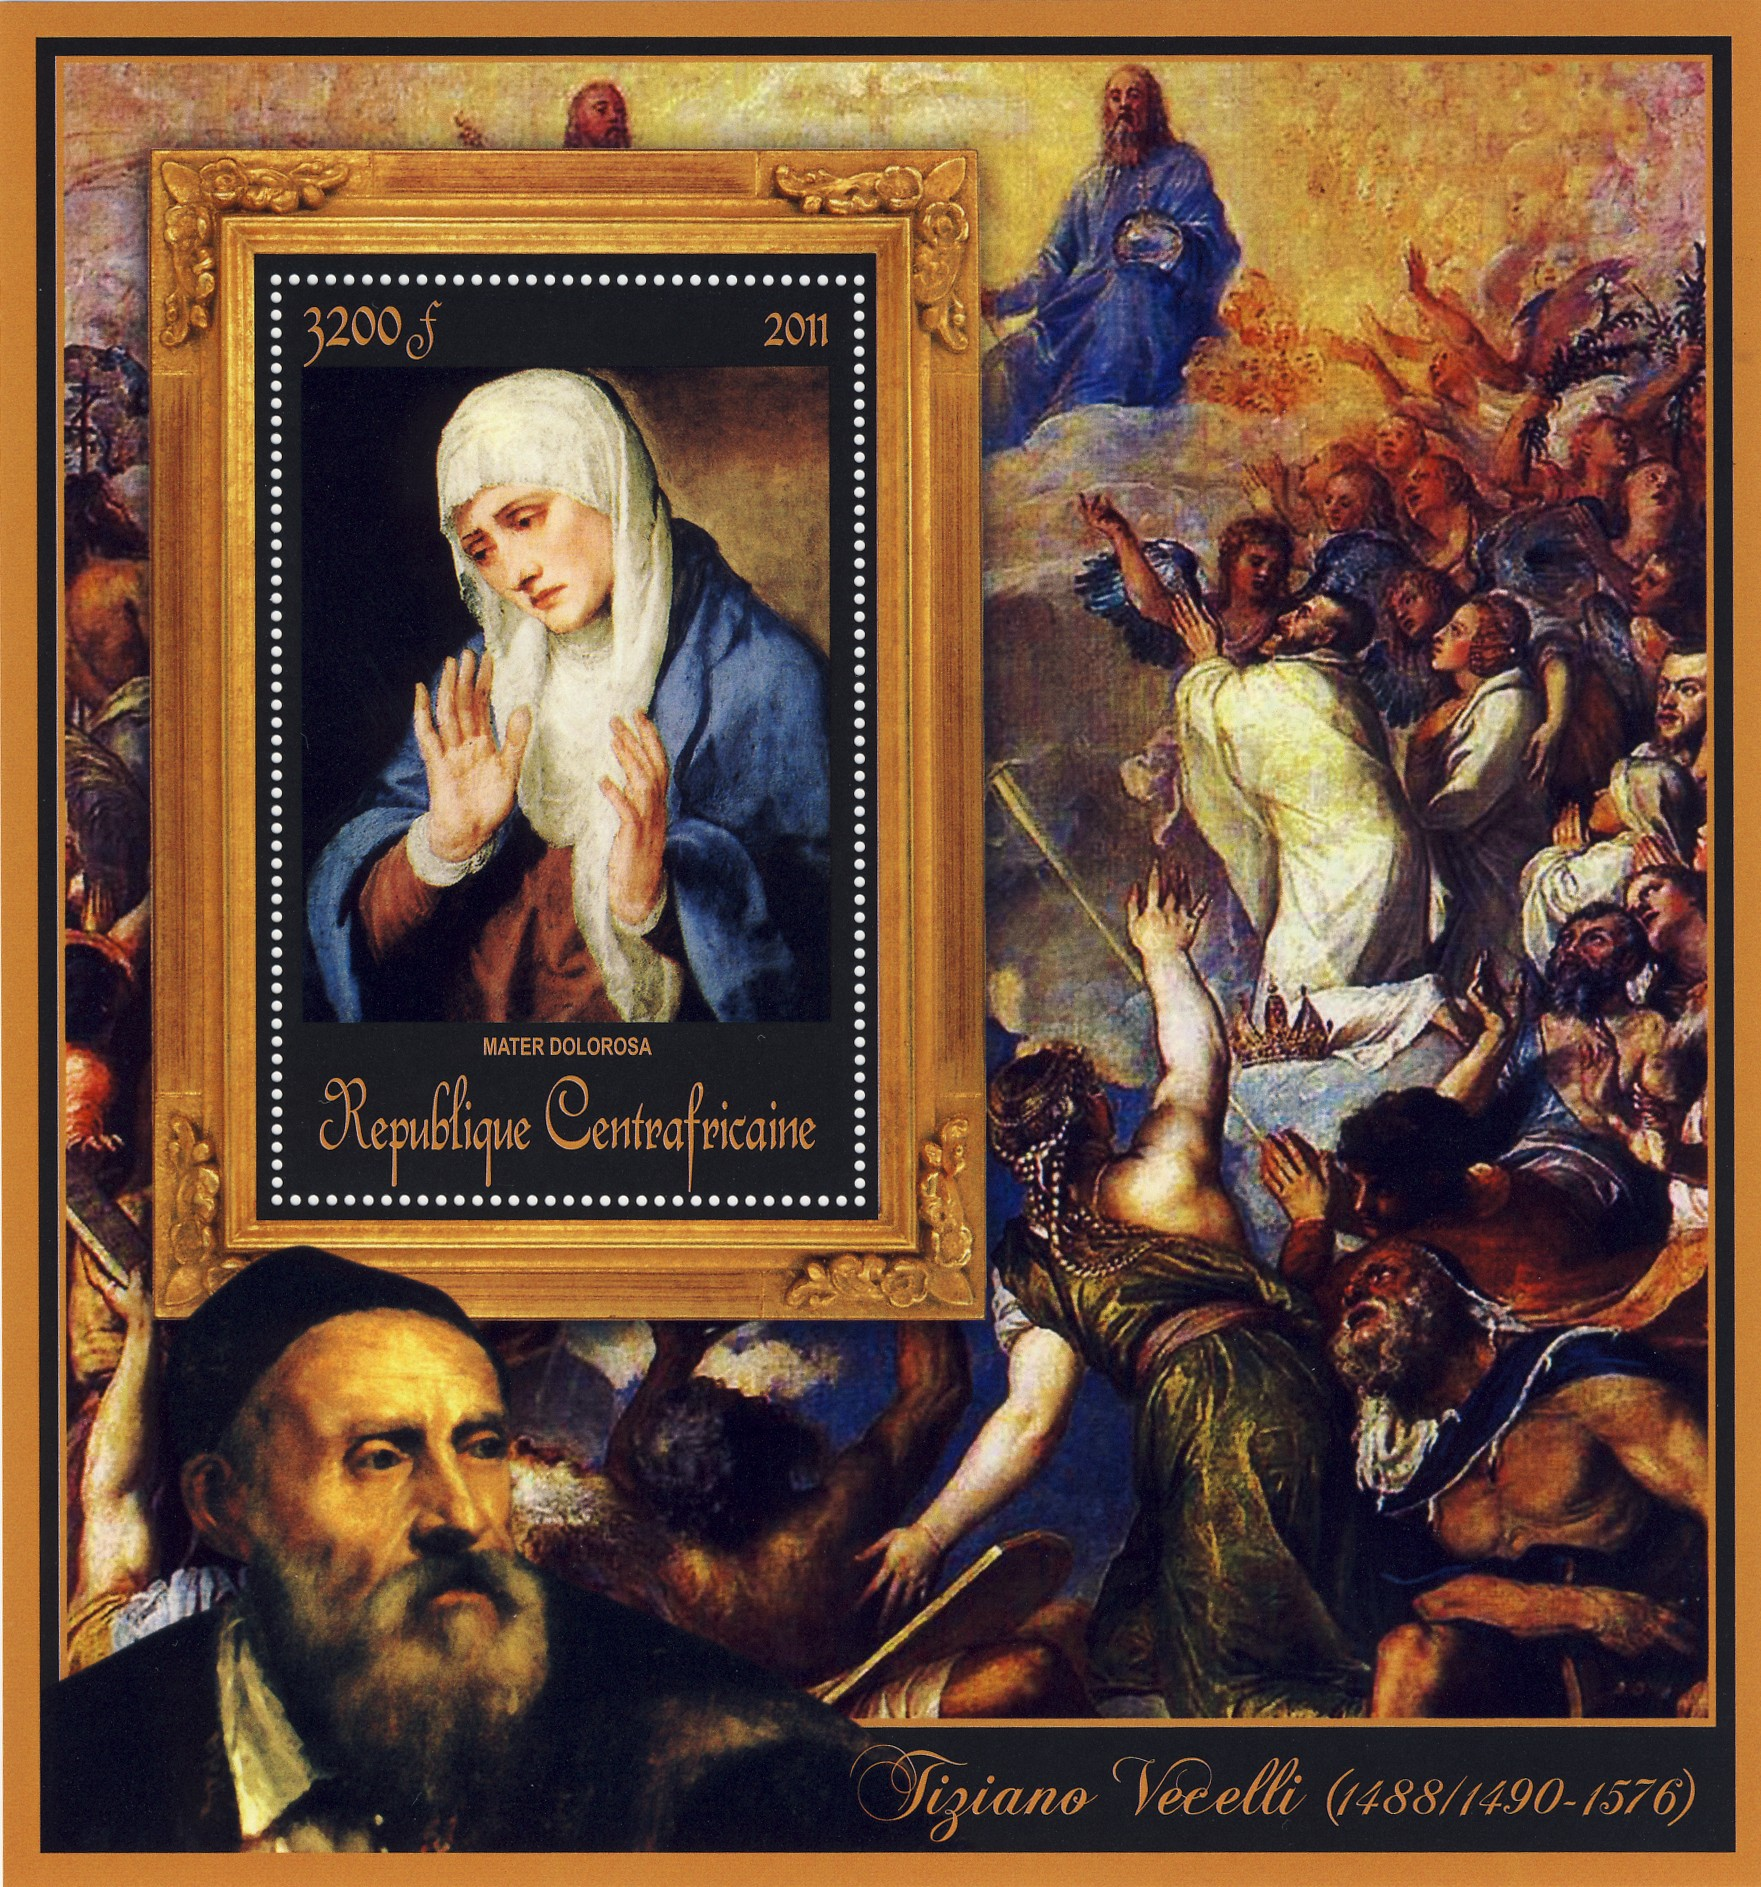 Special Block of Paintings of Tiziano Vecelli,  (Mater Dolorosa). - Issue of Central African republic postage stamps